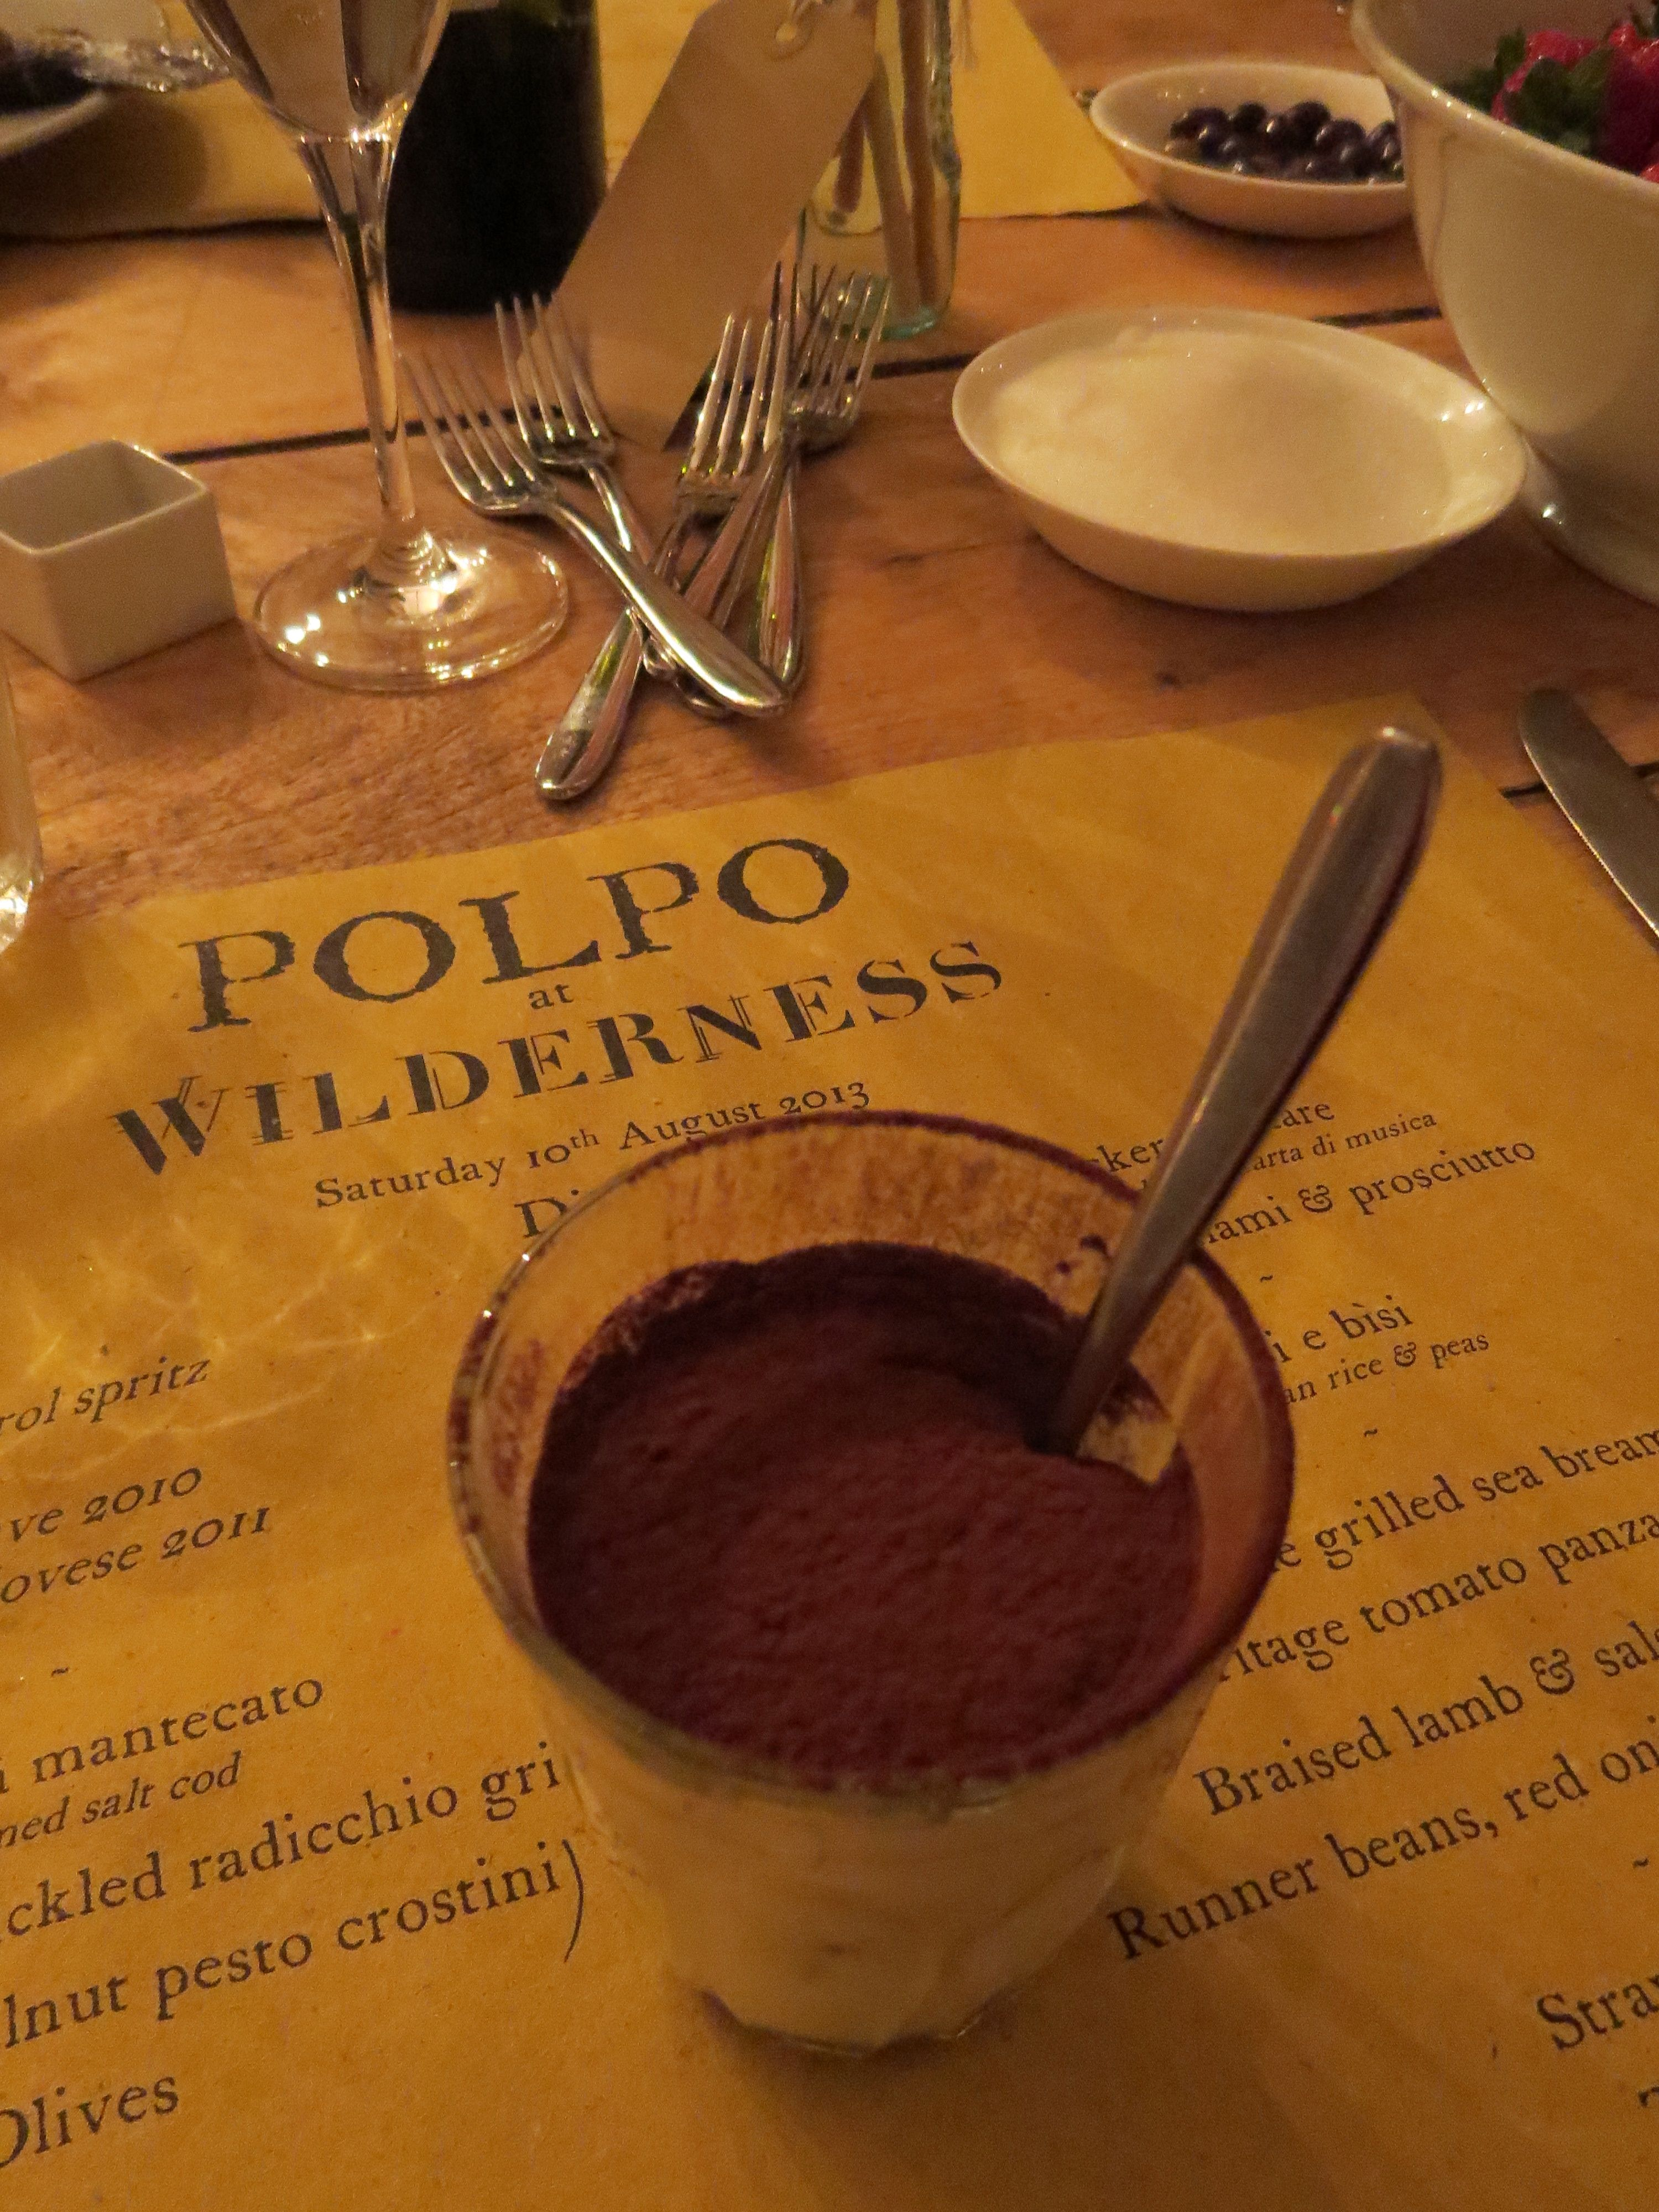 Tiramisu at the Polpo Venetian Banquet at Wilderness